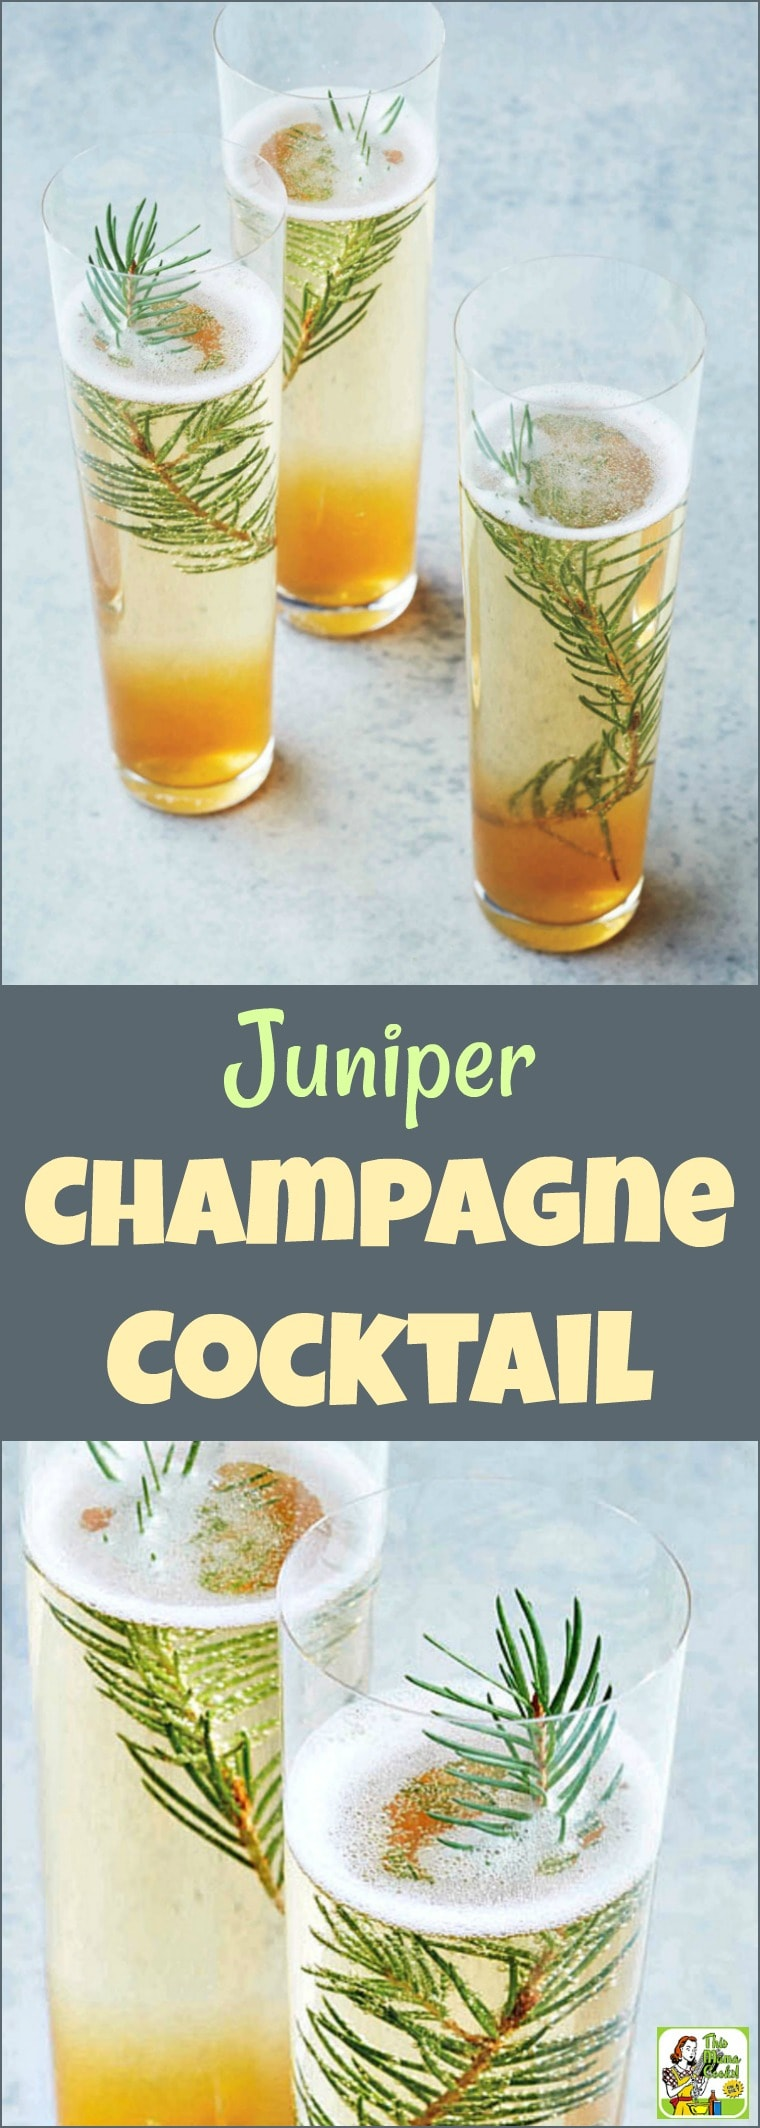 Ring in the New Year\'s with a Juniper Champagne Cocktail! This unique champagne cocktail recipe uses simple syrup, crushed juniper berries and a sprig of festive pine sprig. #cocktails #champagne #recipe #easy #recipeoftheday #glutenfree #easyrecipes #brunch #newyears #newyearseve #drinking #drinks